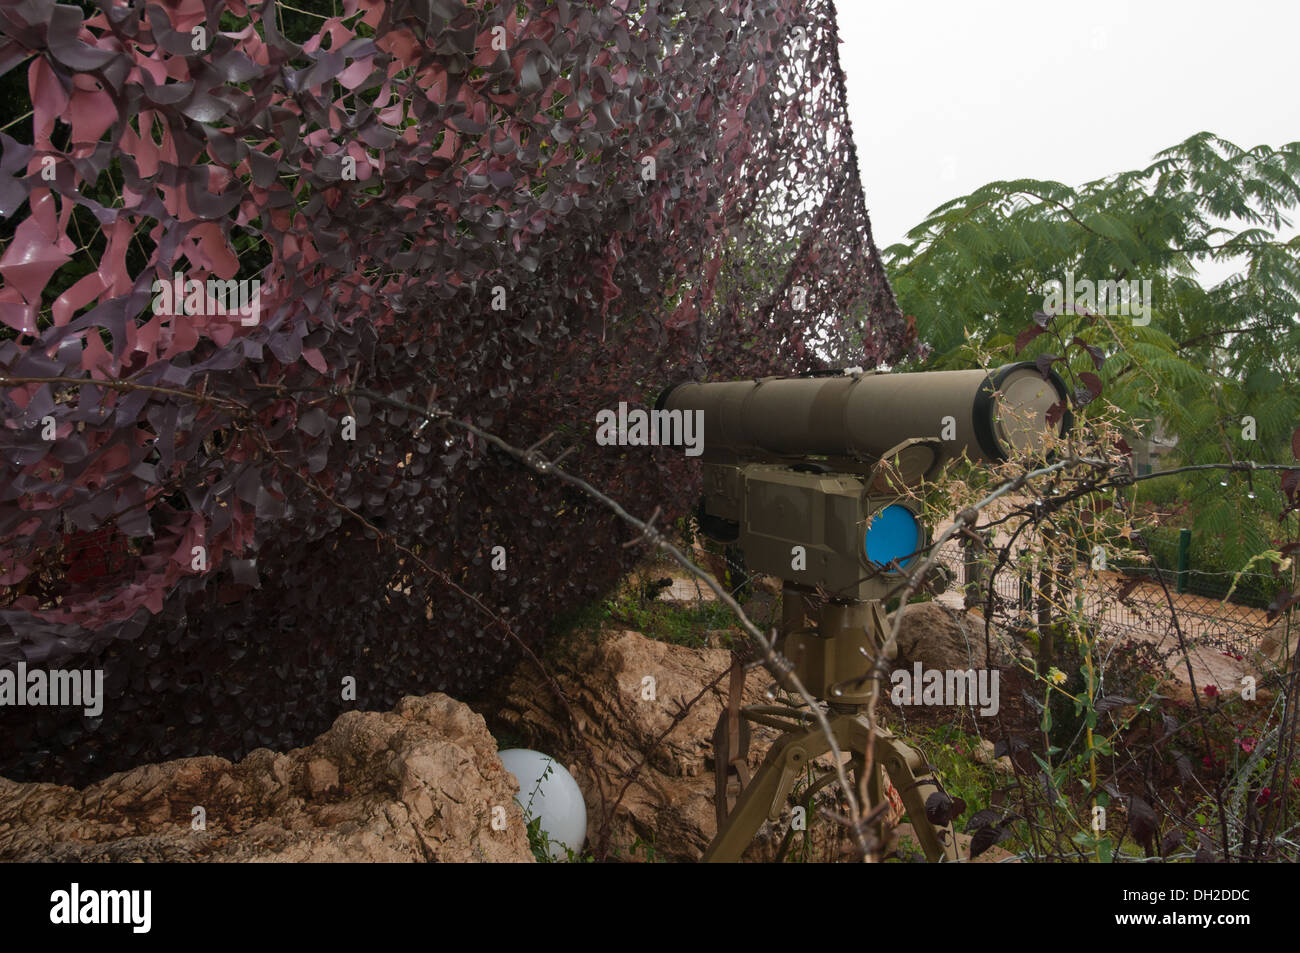 Anti Tank Guided Missile System Kornet - E,  NATO reporting name AT-14 Spriggan. Mleeta, Hezbollah Museum, South Lebanon. - Stock Image